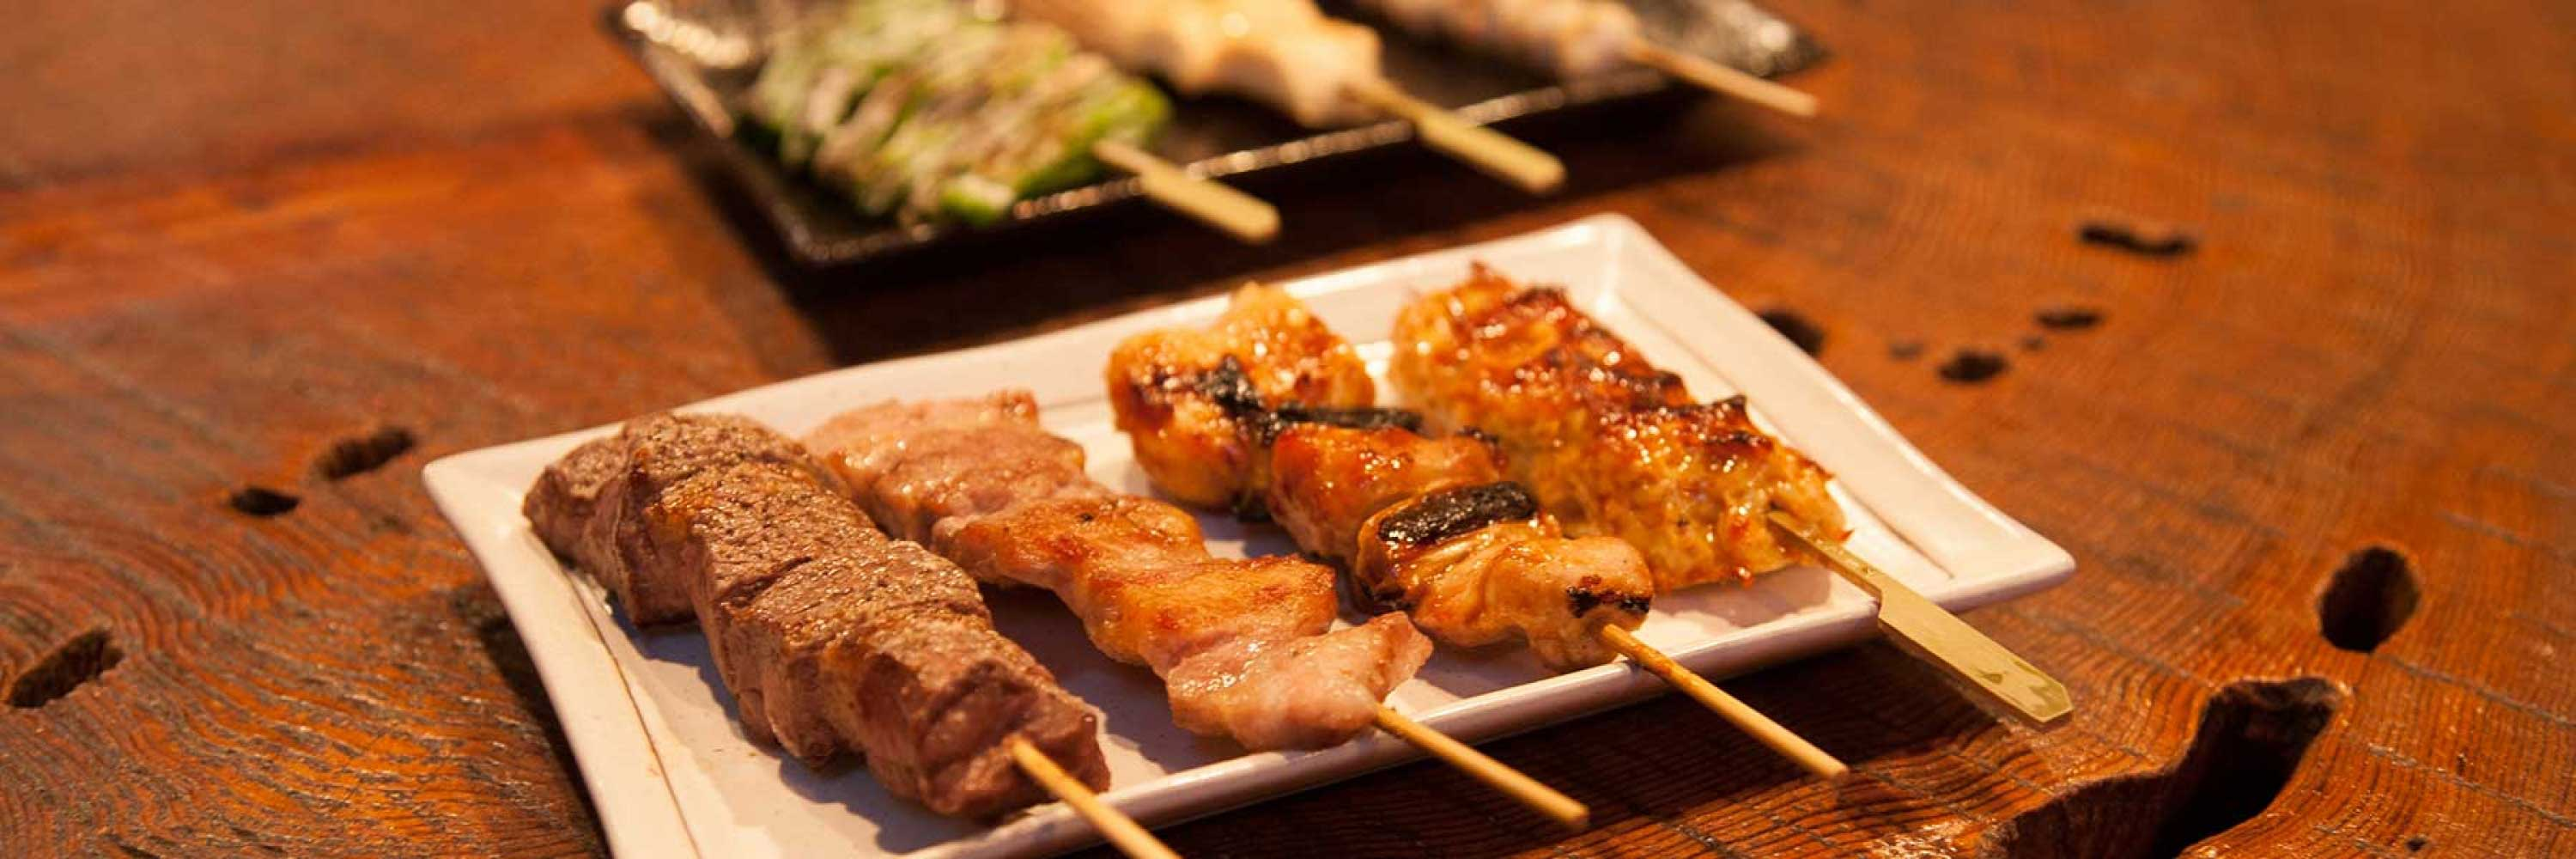 the best selection of kebabs at the hakuba taproom